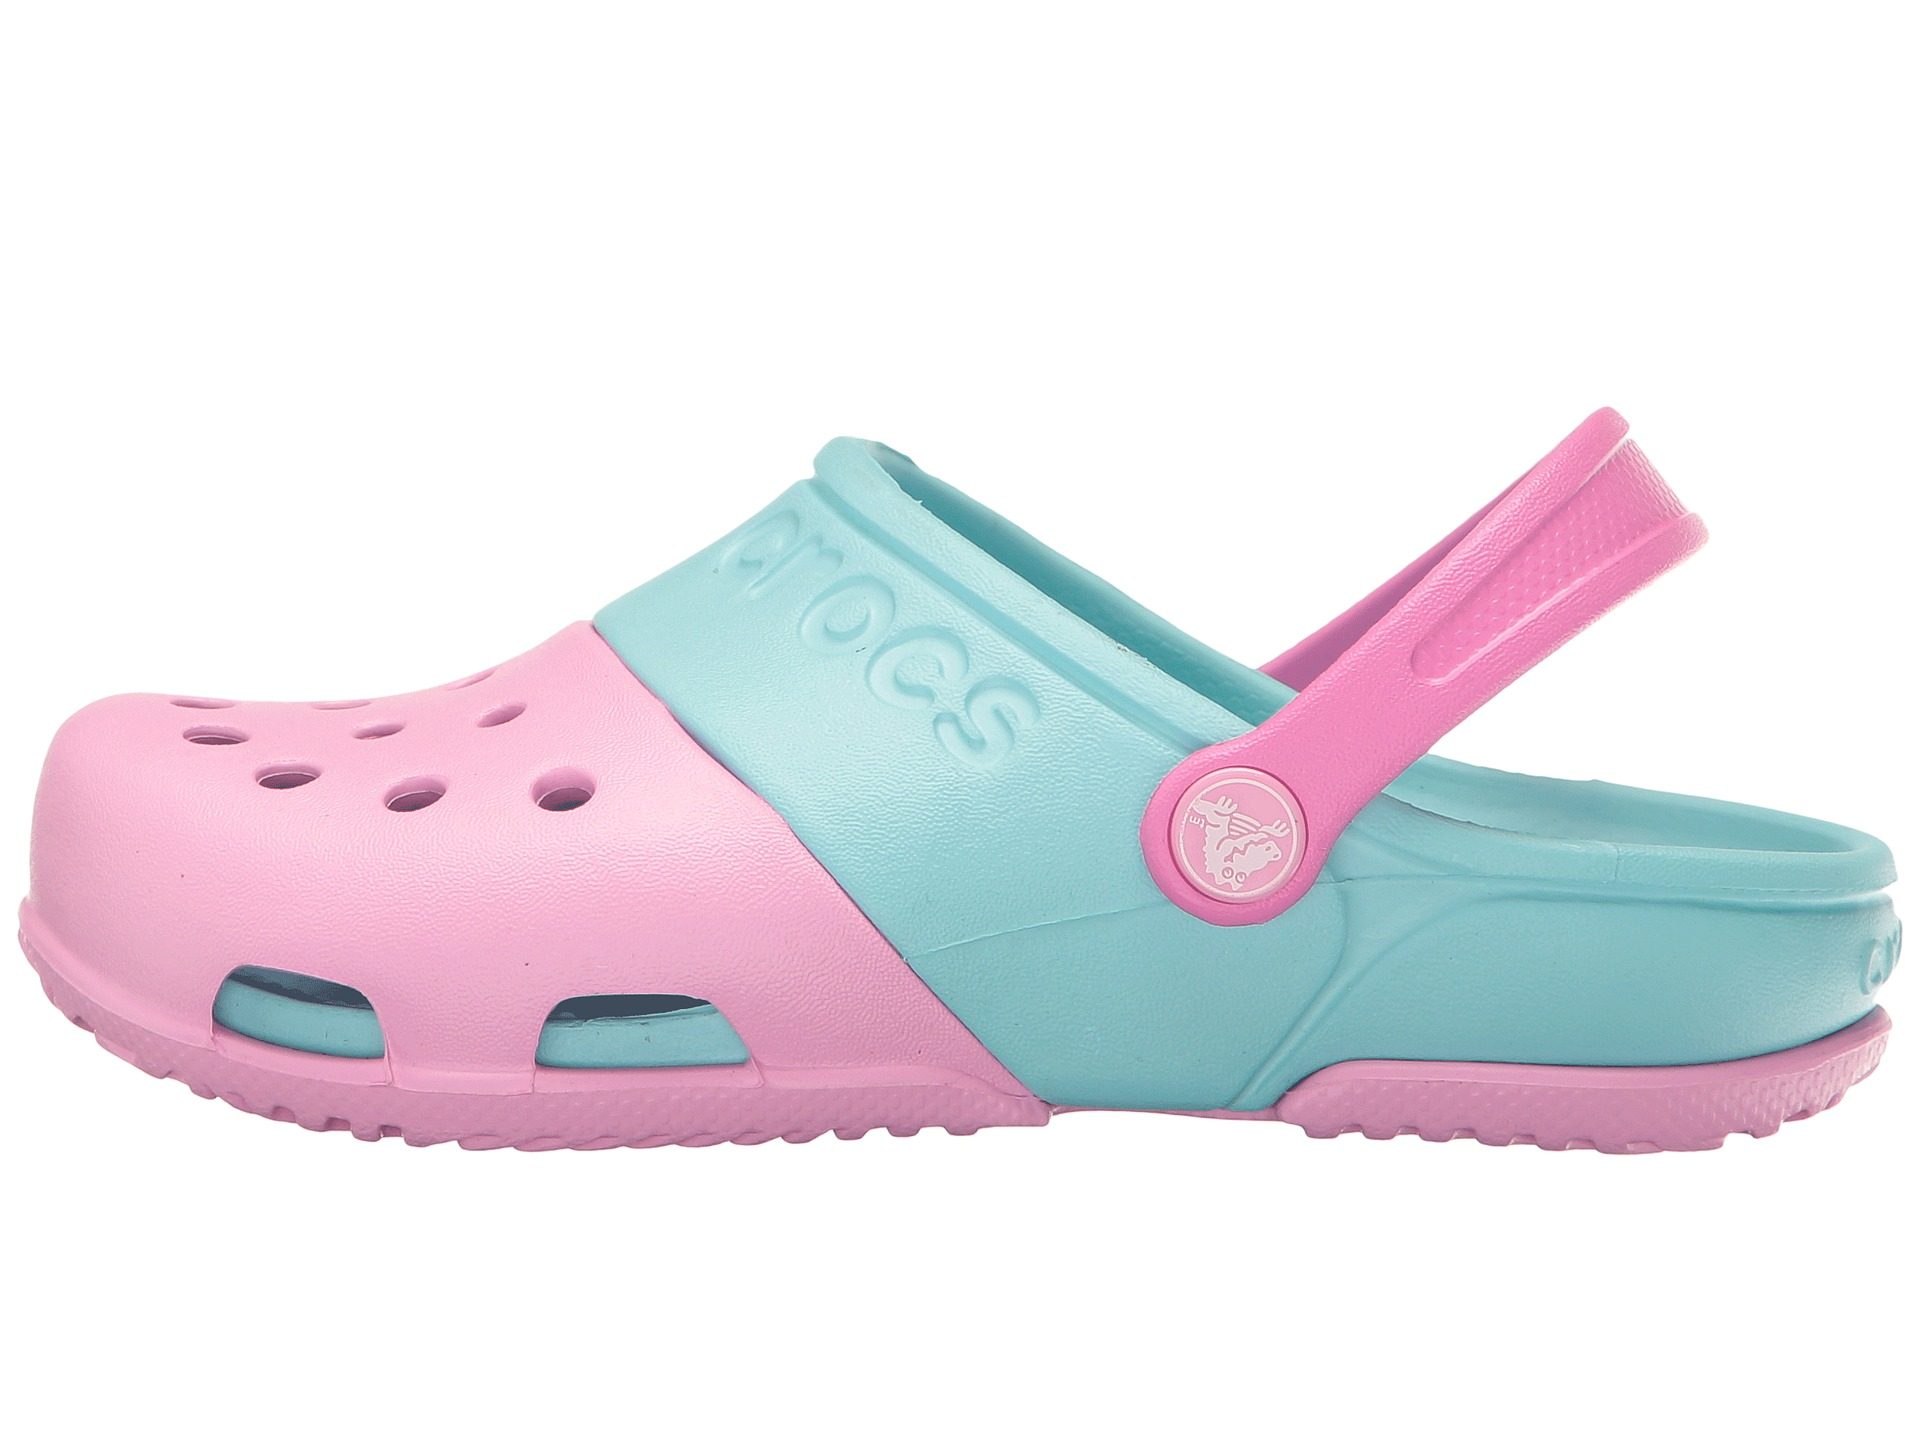 Crocs Toddler Shoe Size